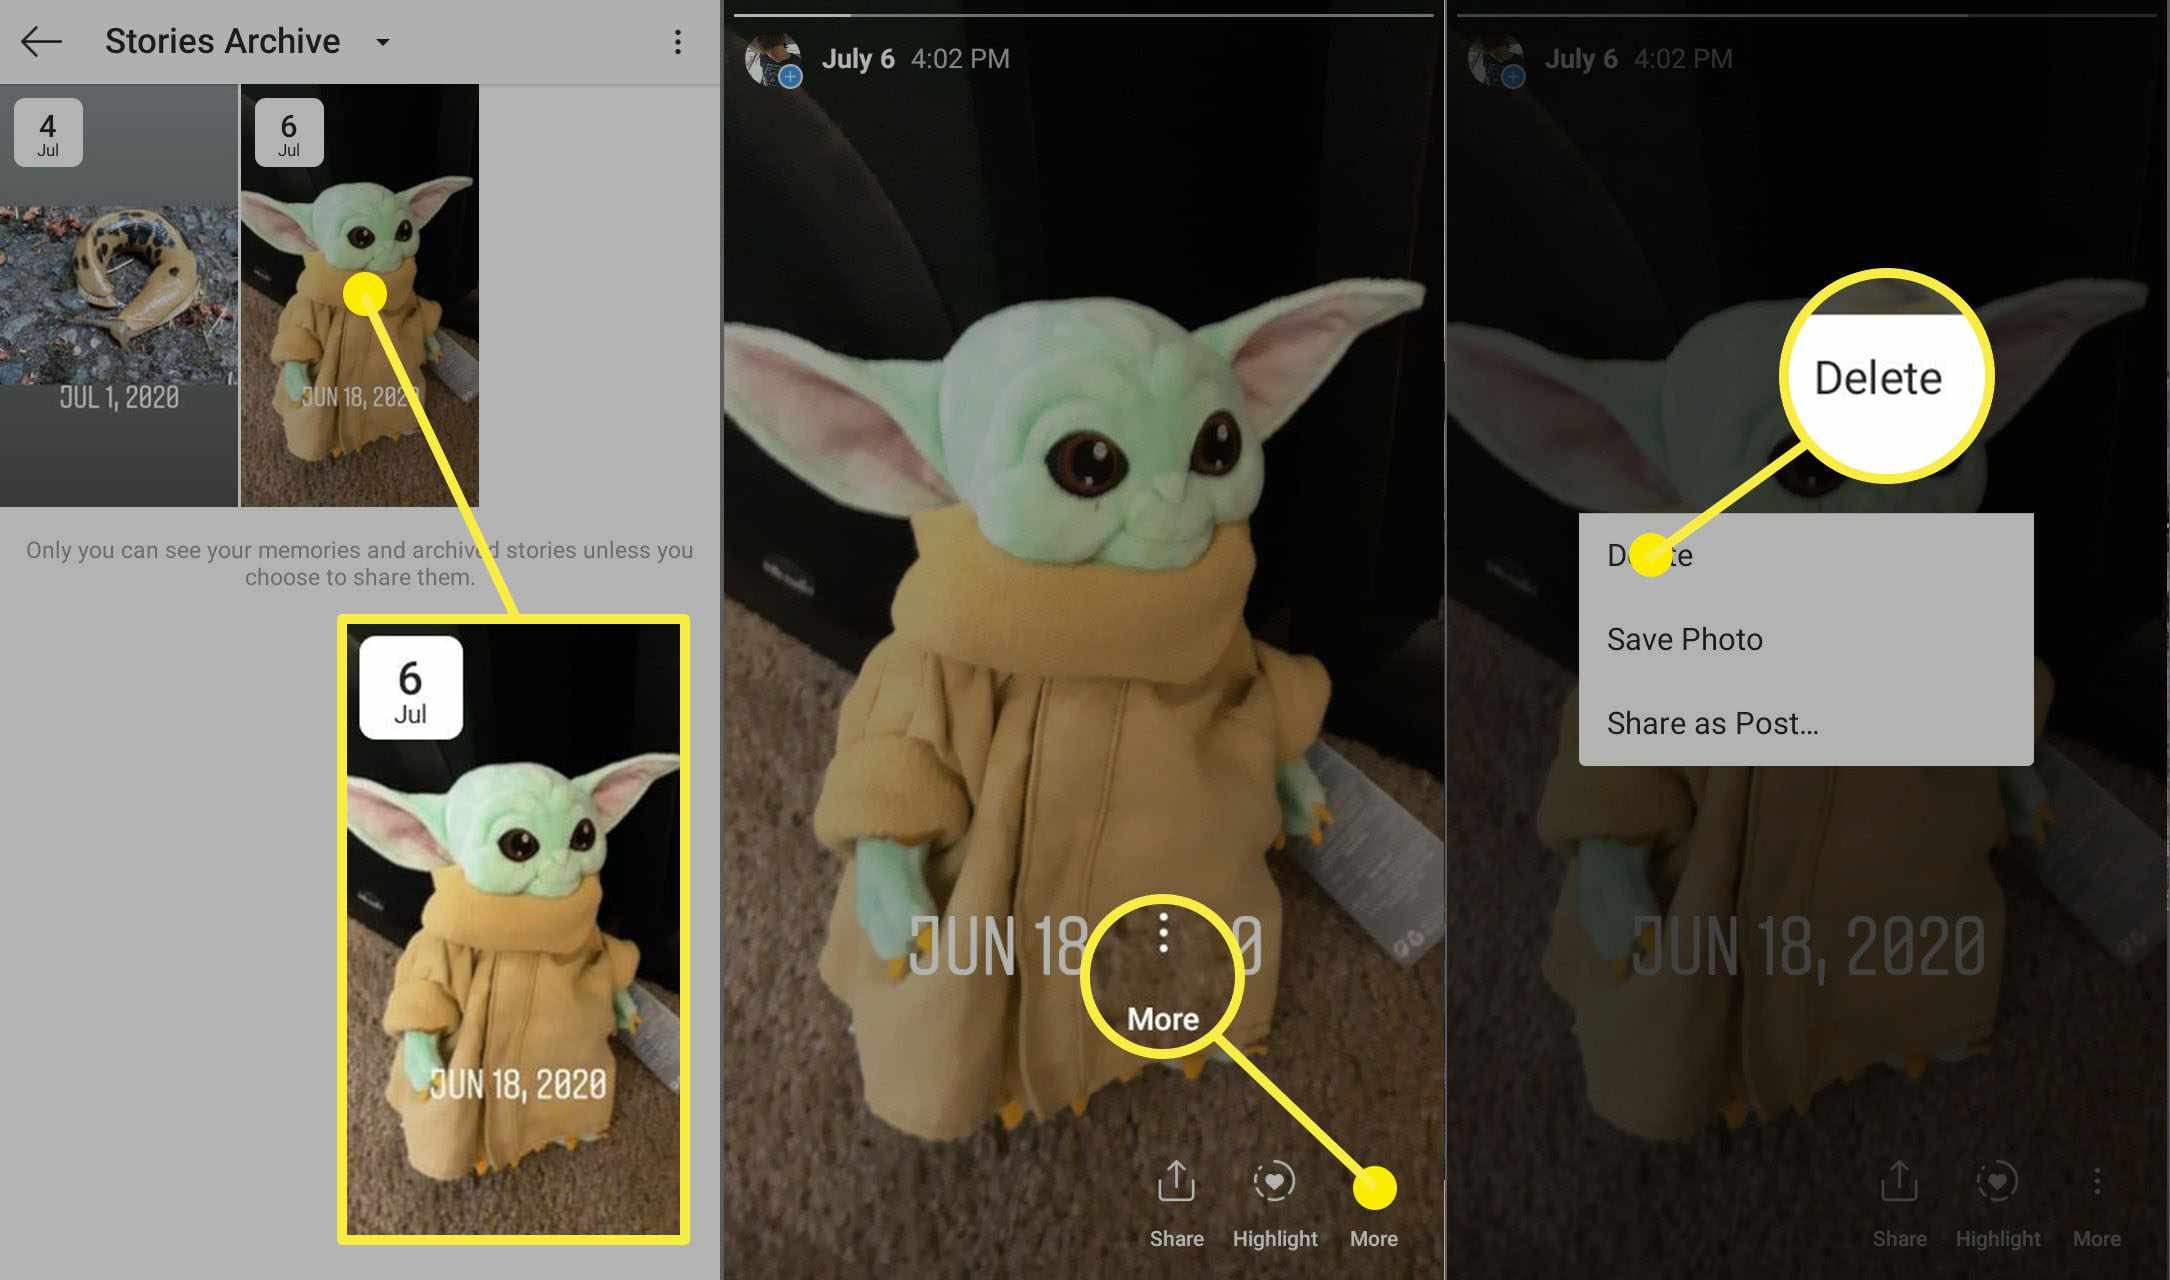 How to delete a story from the Instagram stories archive.